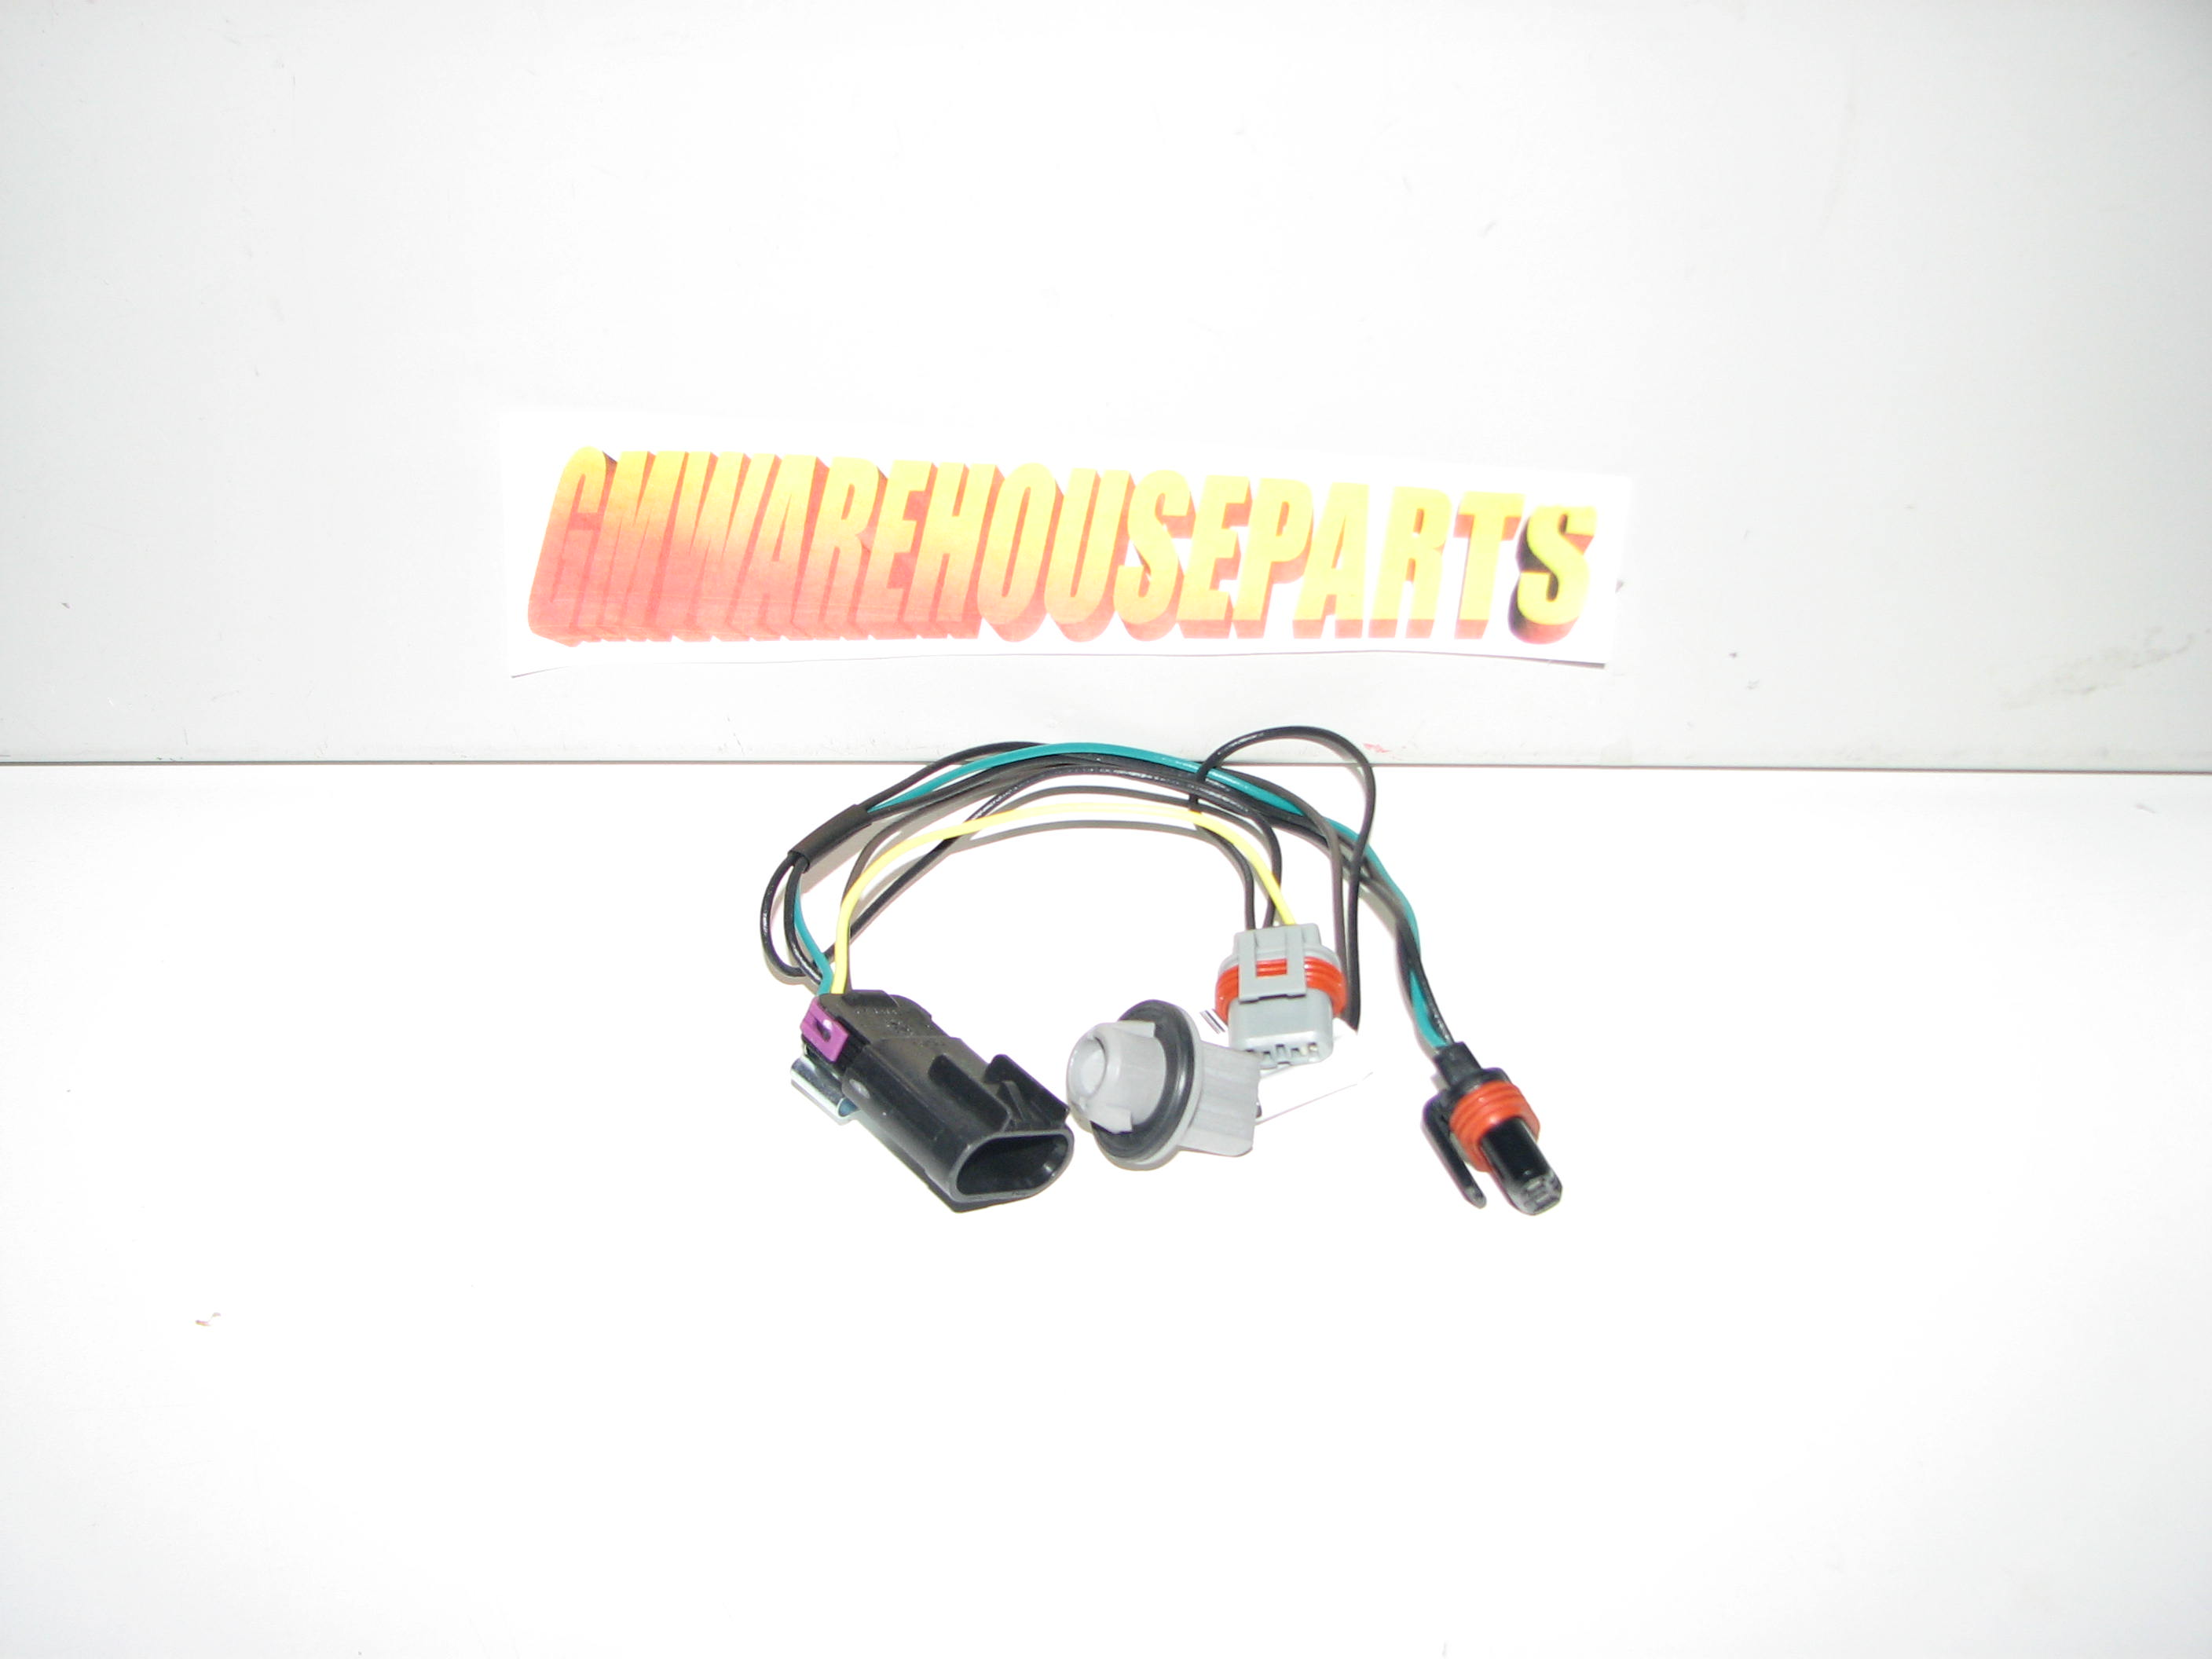 2004 2008 grand prix headlight wiring harness new gm 16530756 2004 2008 grand prix headlight wiring harness new gm 16530756